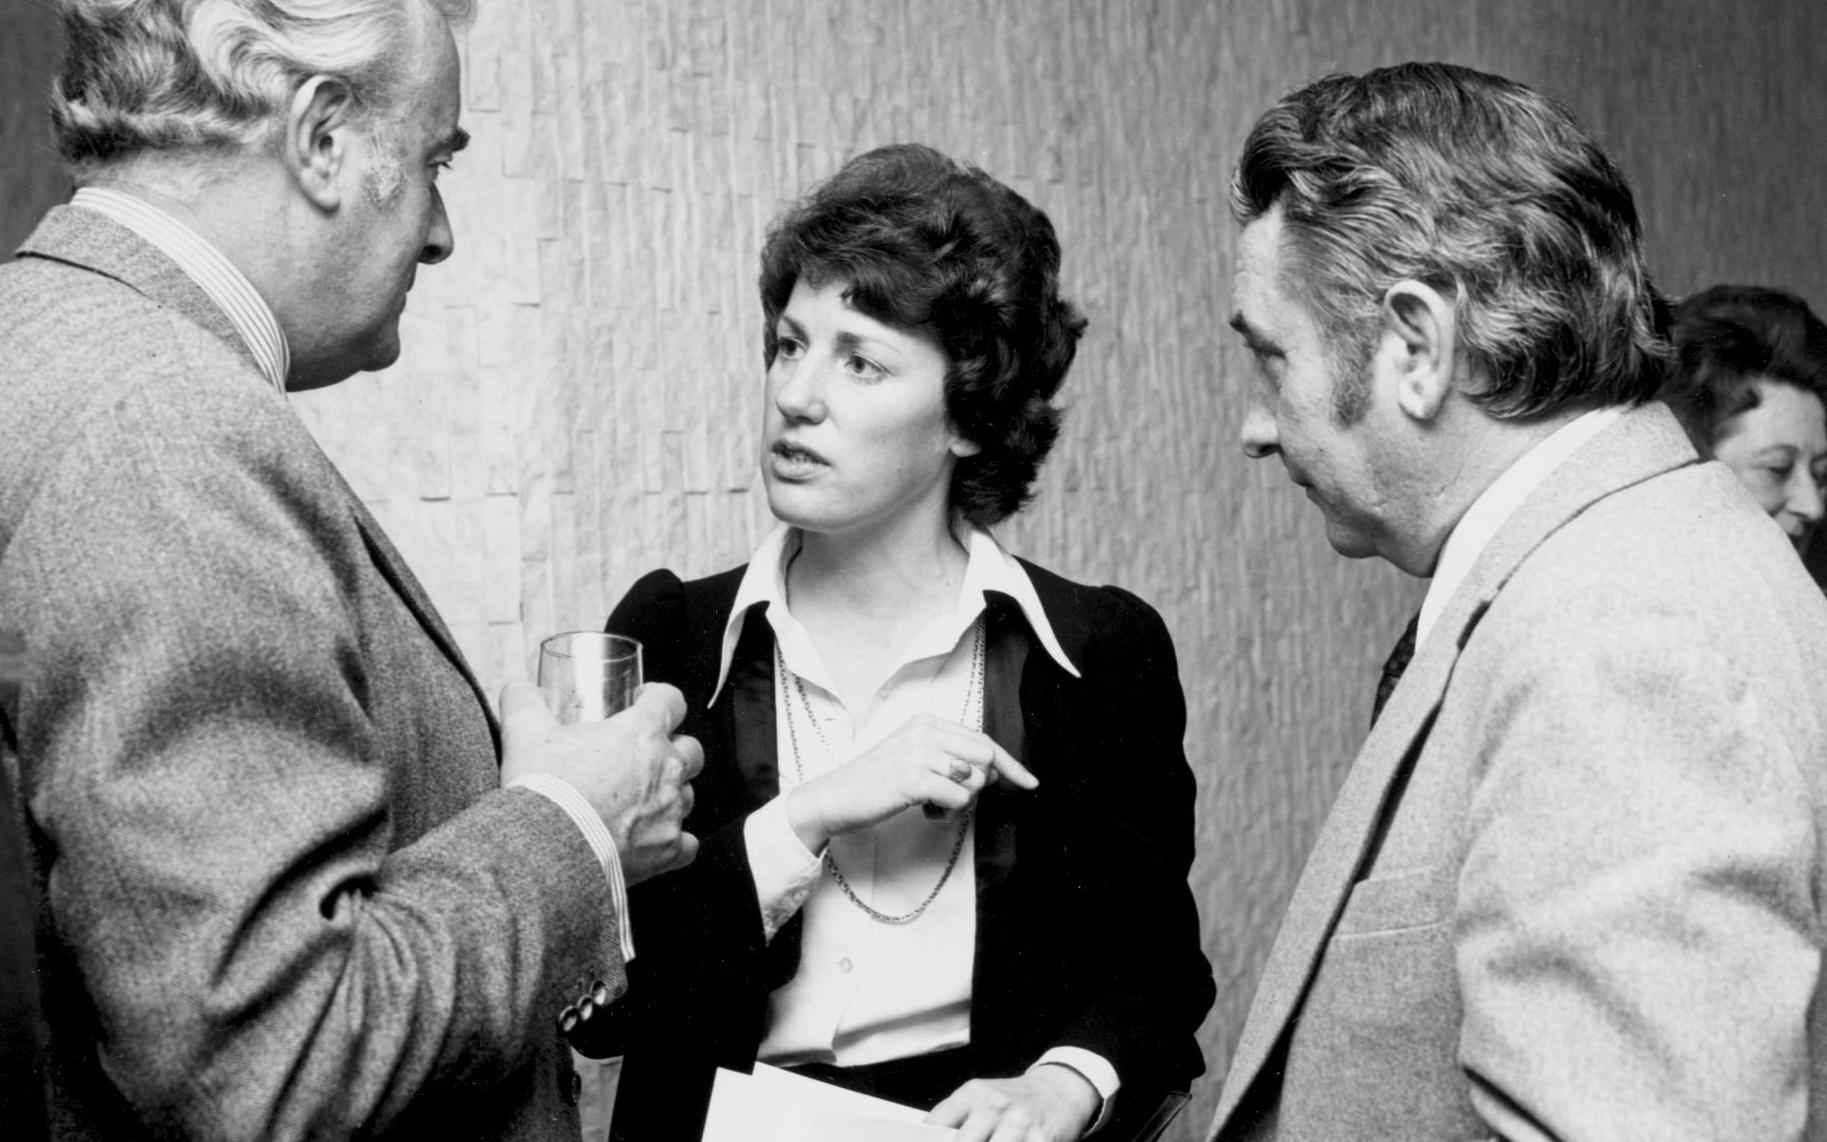 Elizabeth Reid, Australia's first advisor on women's affairs, with Prime Minister Gough Whitlam, 1973.